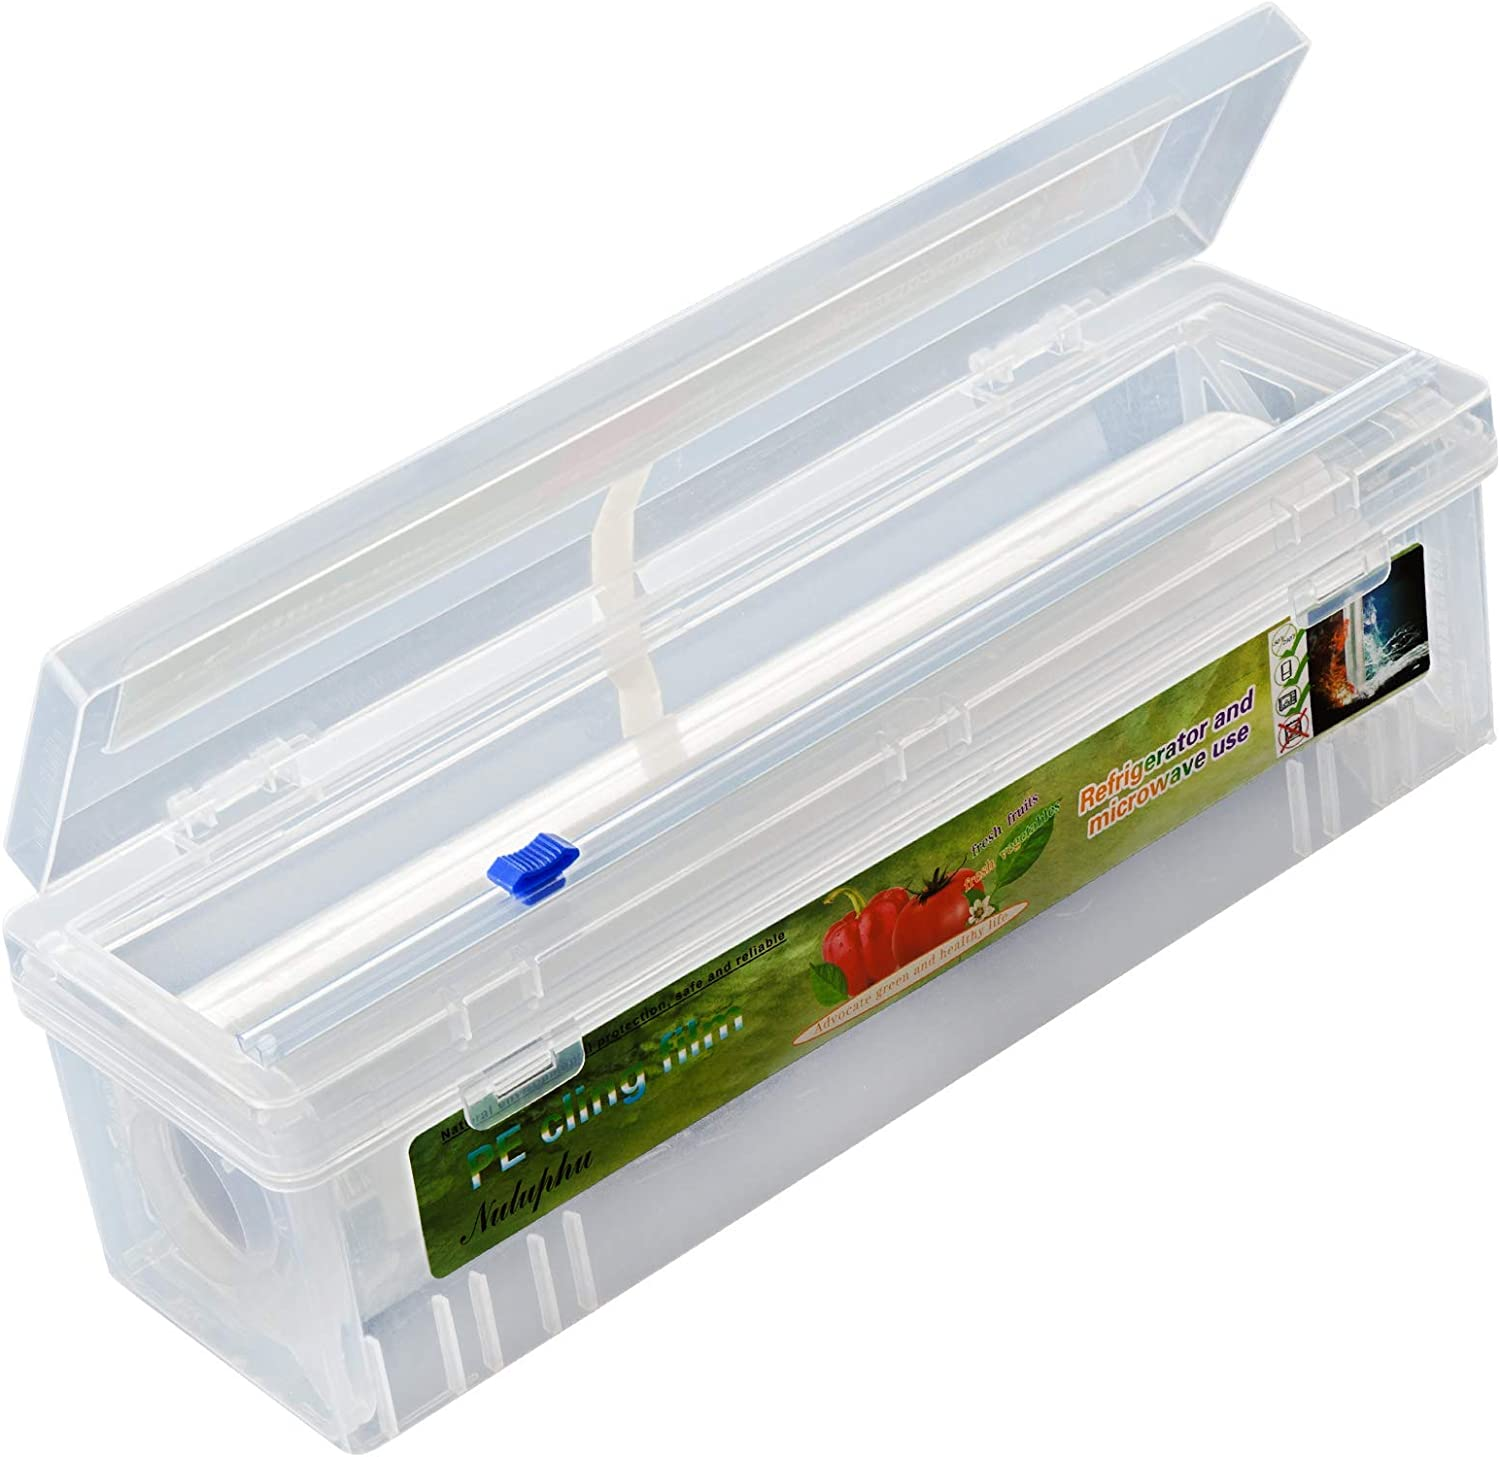 Plastic Cling Wrap Refillable Plastic Wrap Dispenser with Slider Cutter Food Wrap Stretch Clear Cling Wrap 12 inch×650 Ft (Cutting Box + Cling Film)